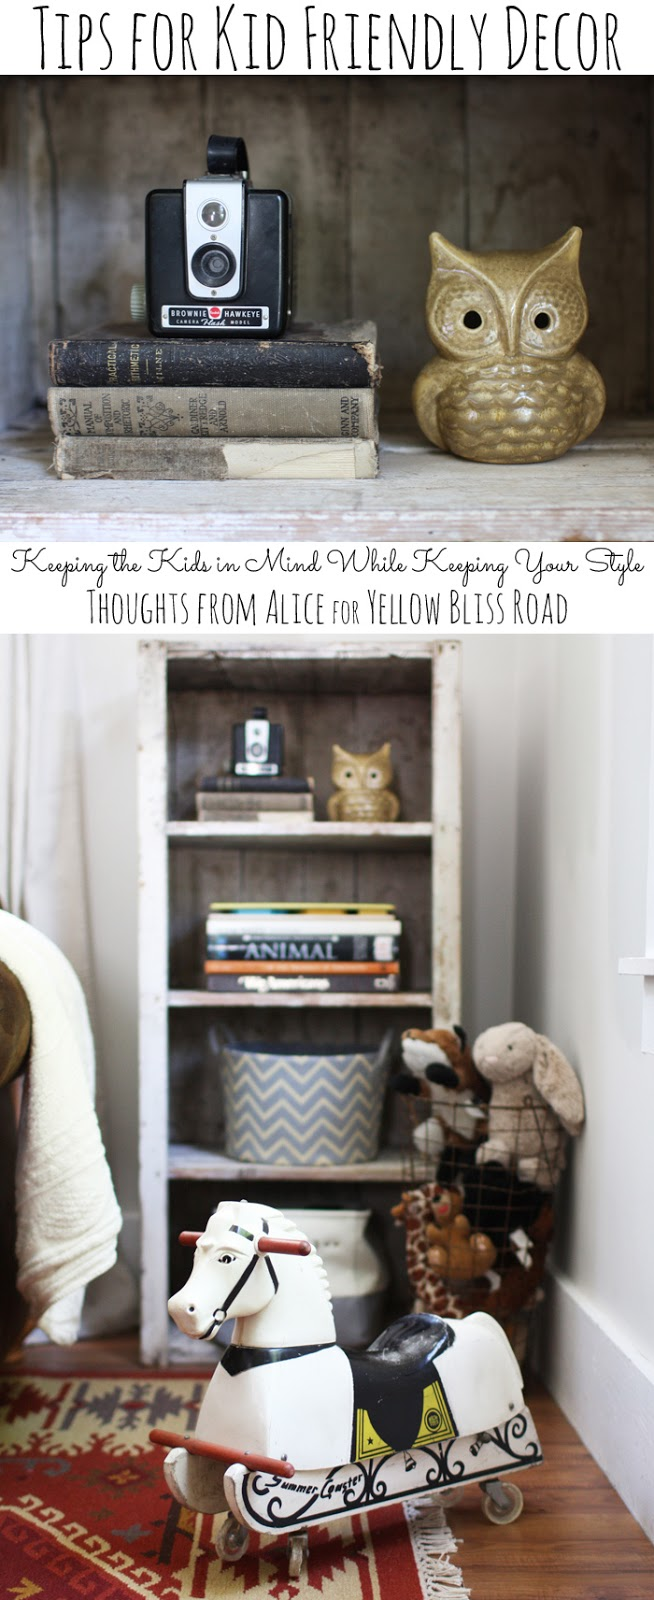 Rustic Minimalism Get The Look Sundays At Home No 22 Link Party Features